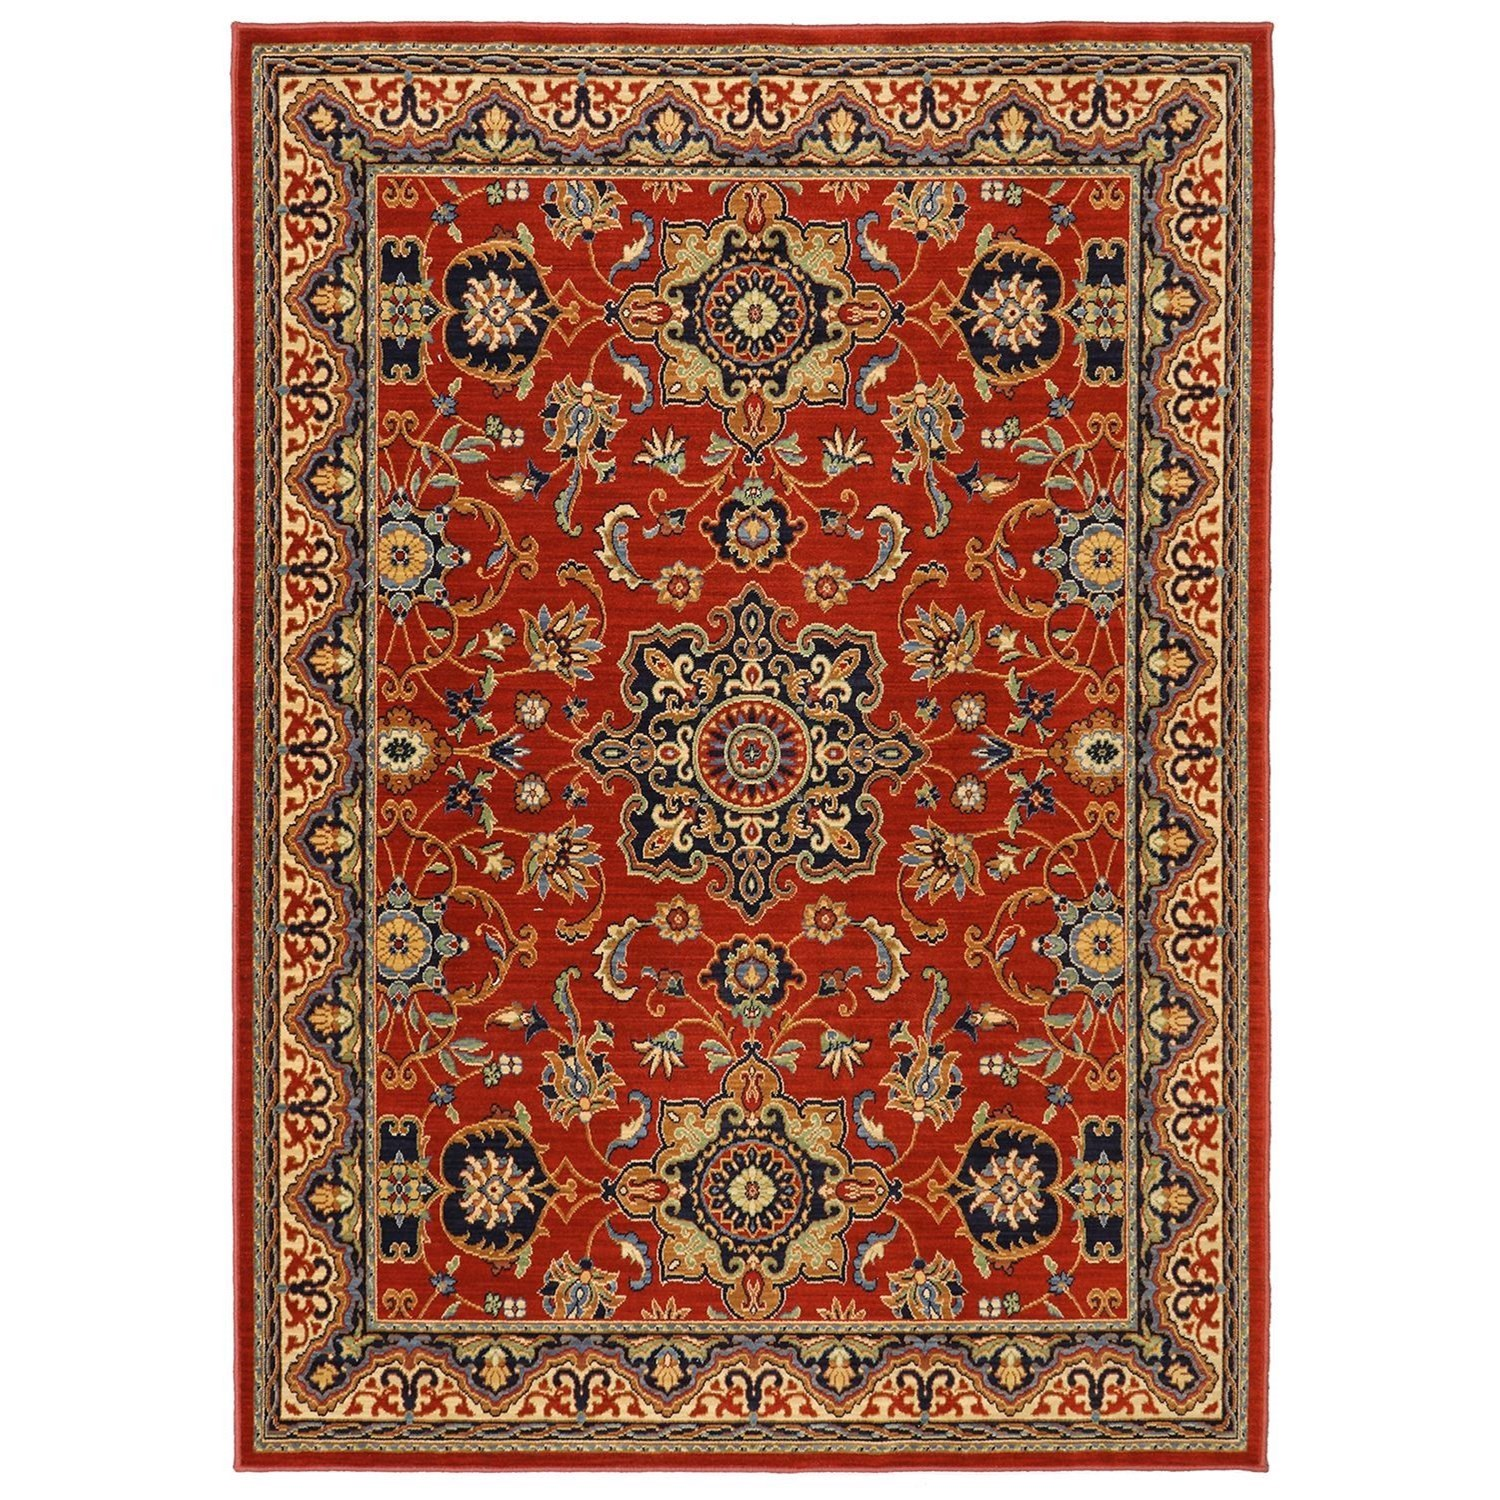 Karastan Rugs English Manor 8'6x11'6 Manchester Red Rug - Item Number: 02120 00601 102138